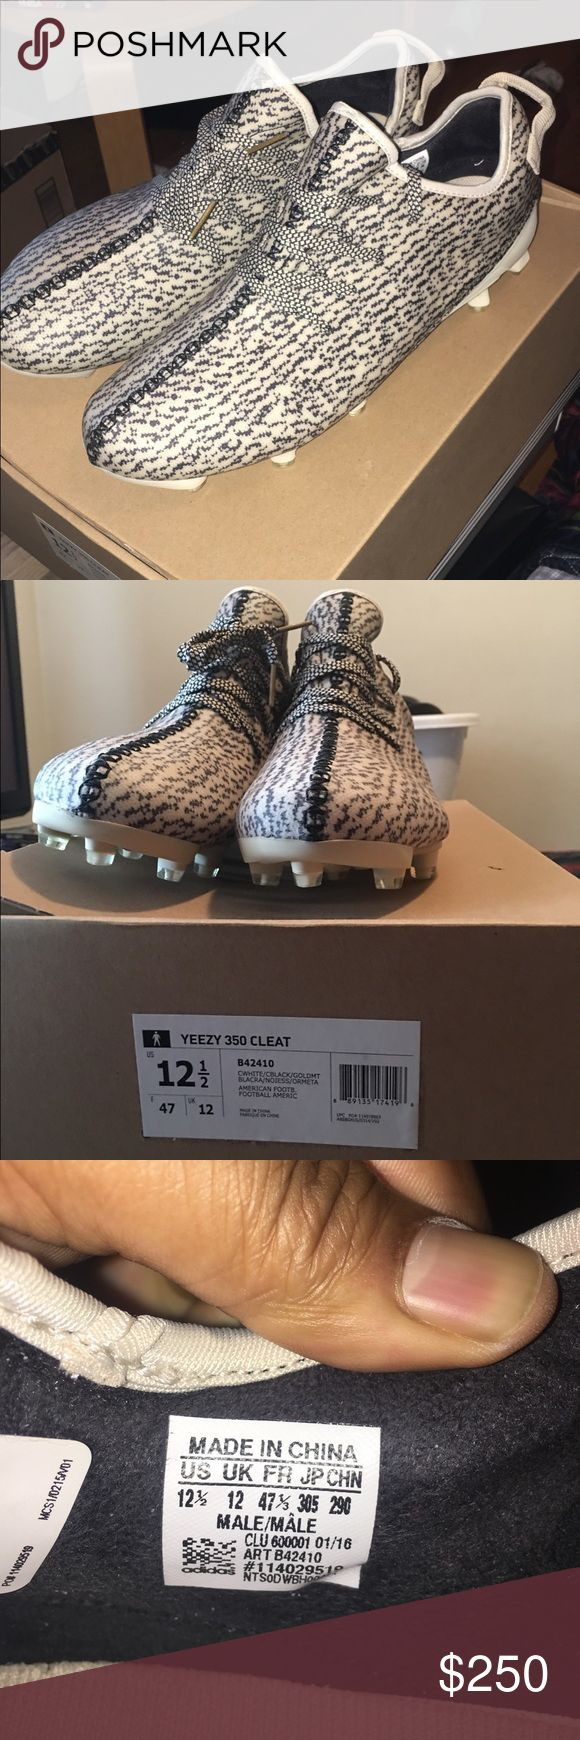 Adidas yeezy football cleats Brand new adidas yeezy football cleats never worn! Size 12 original everything Adidas Shoes Sneakers